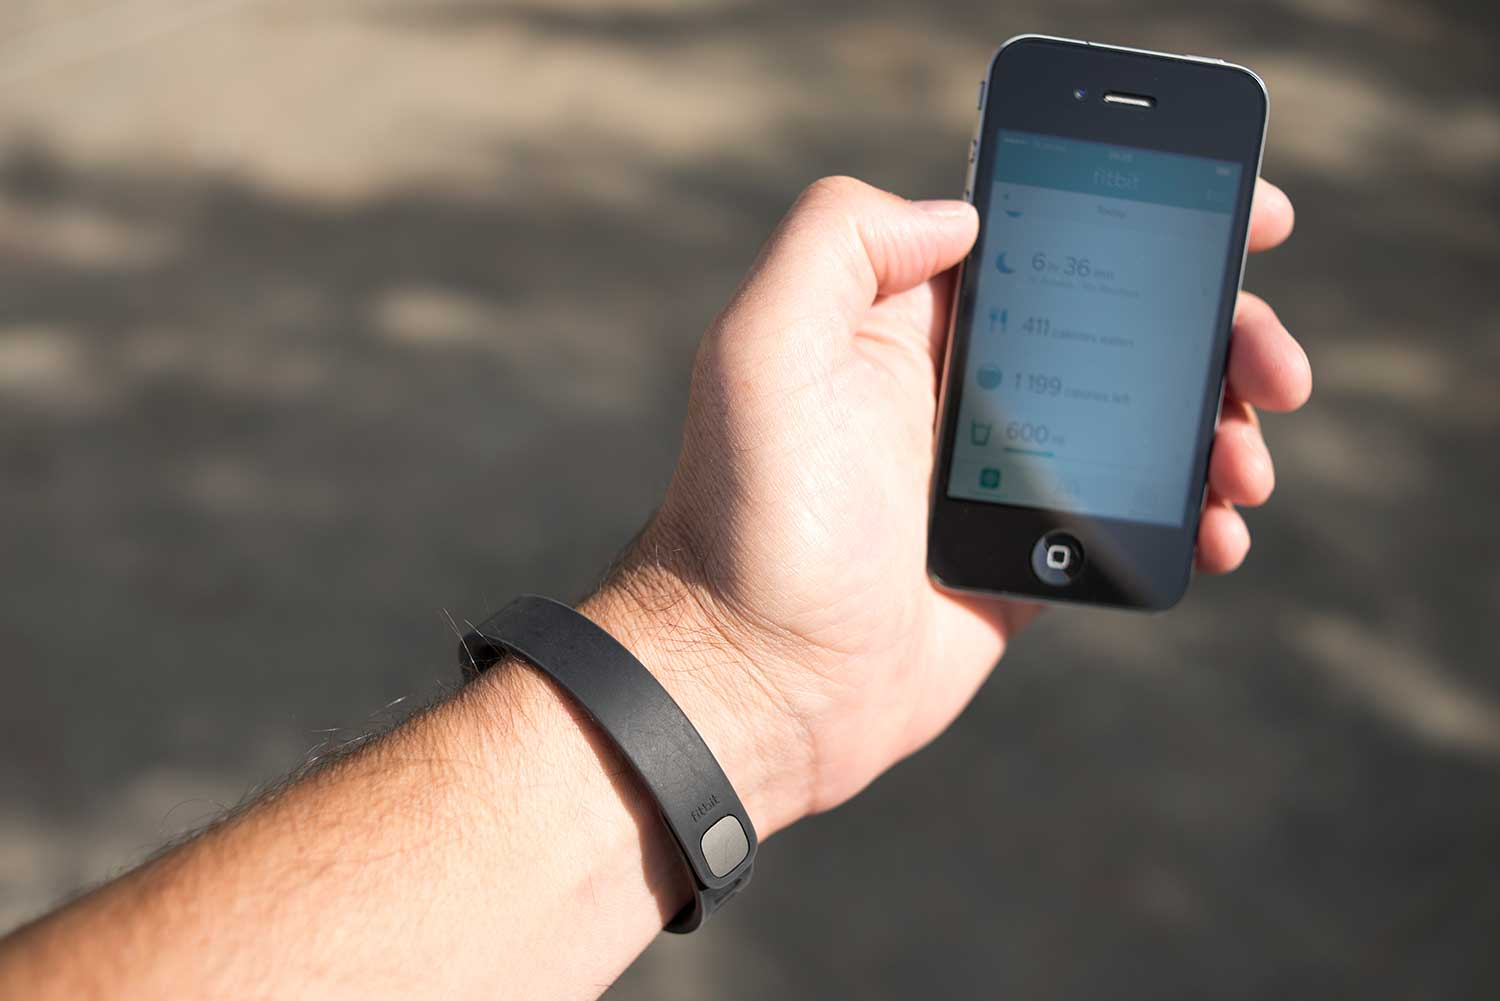 A man wearing a black Fitbit Flex activity tracking wristband uses the Fitbit application on an iPhone